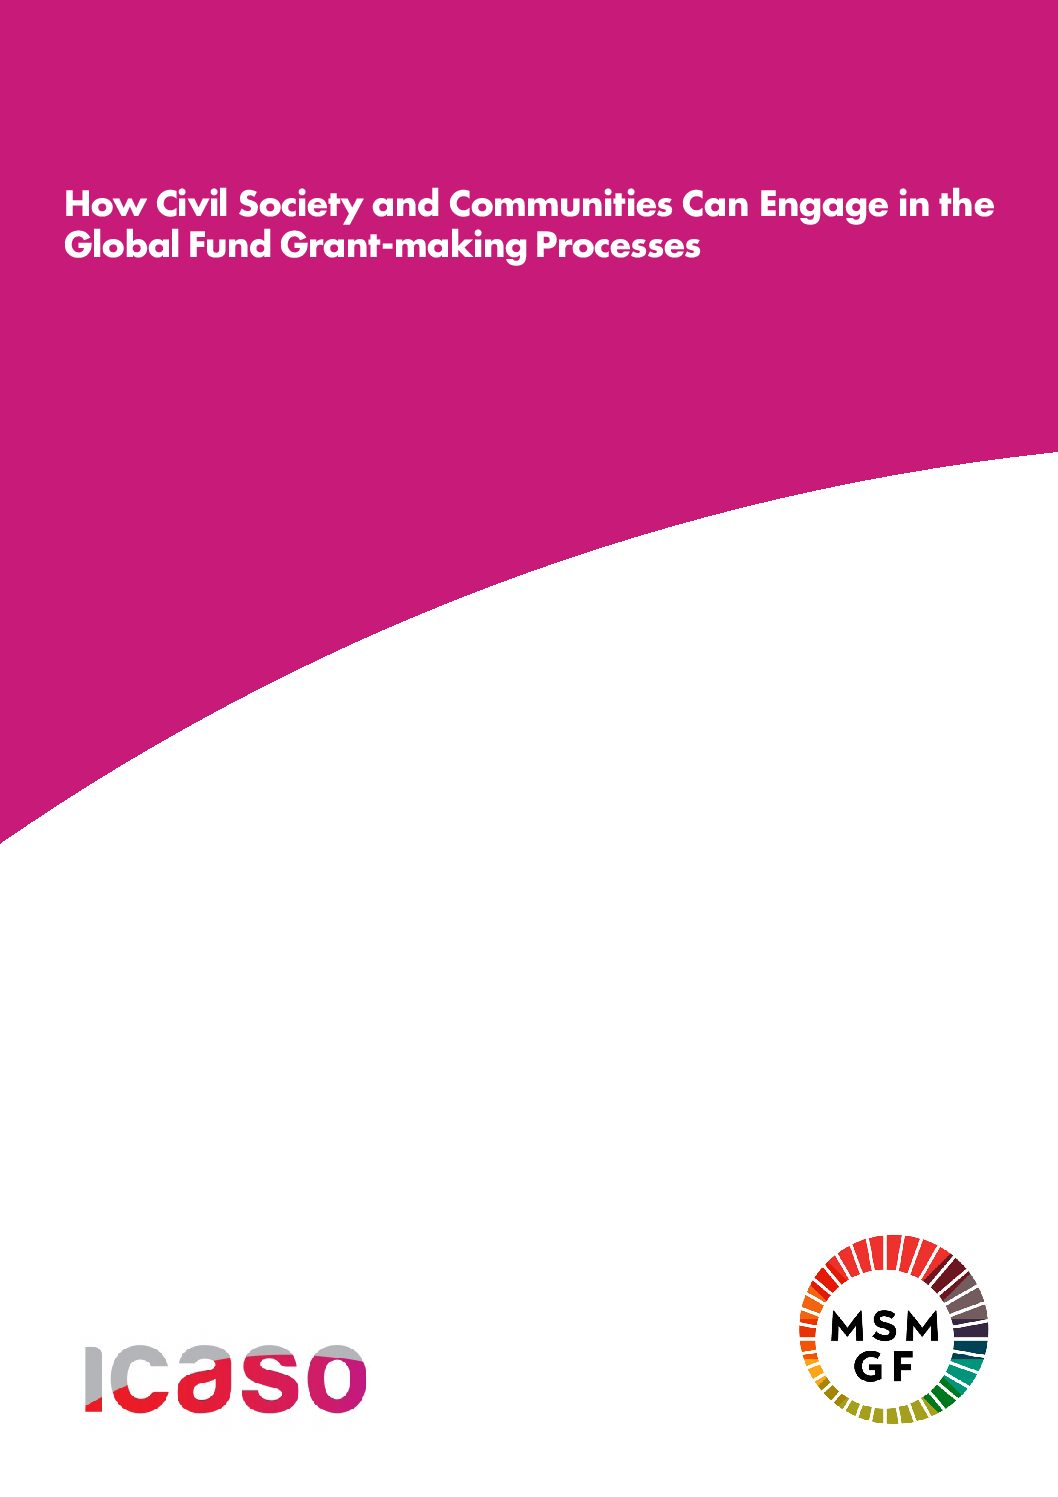 How Civil Society and Communities Can Engage in the Global Fund Grant-making Processes. Information note